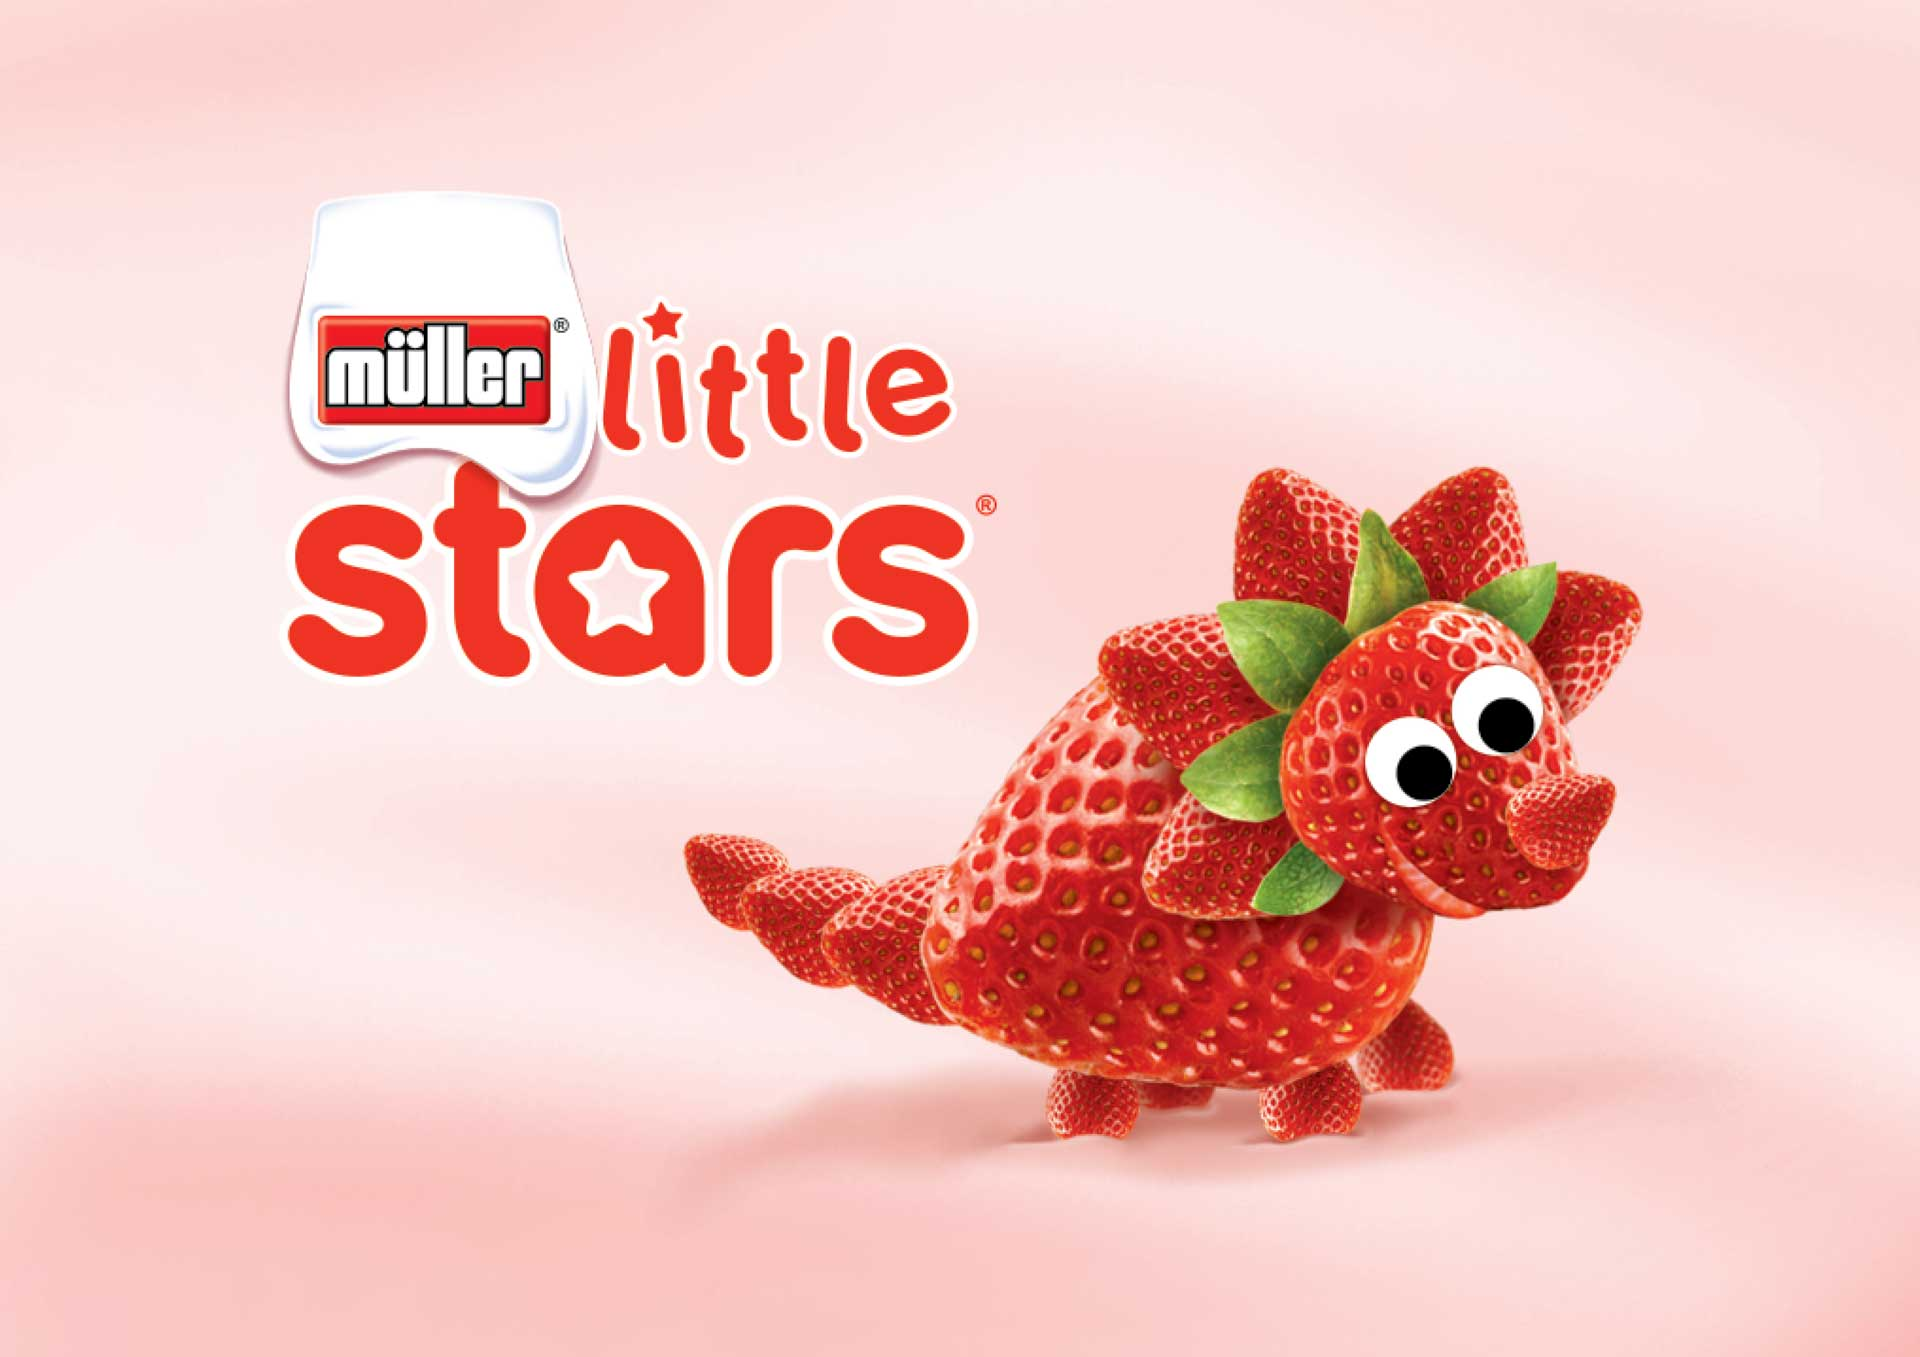 muller-little-stars-packaging-1